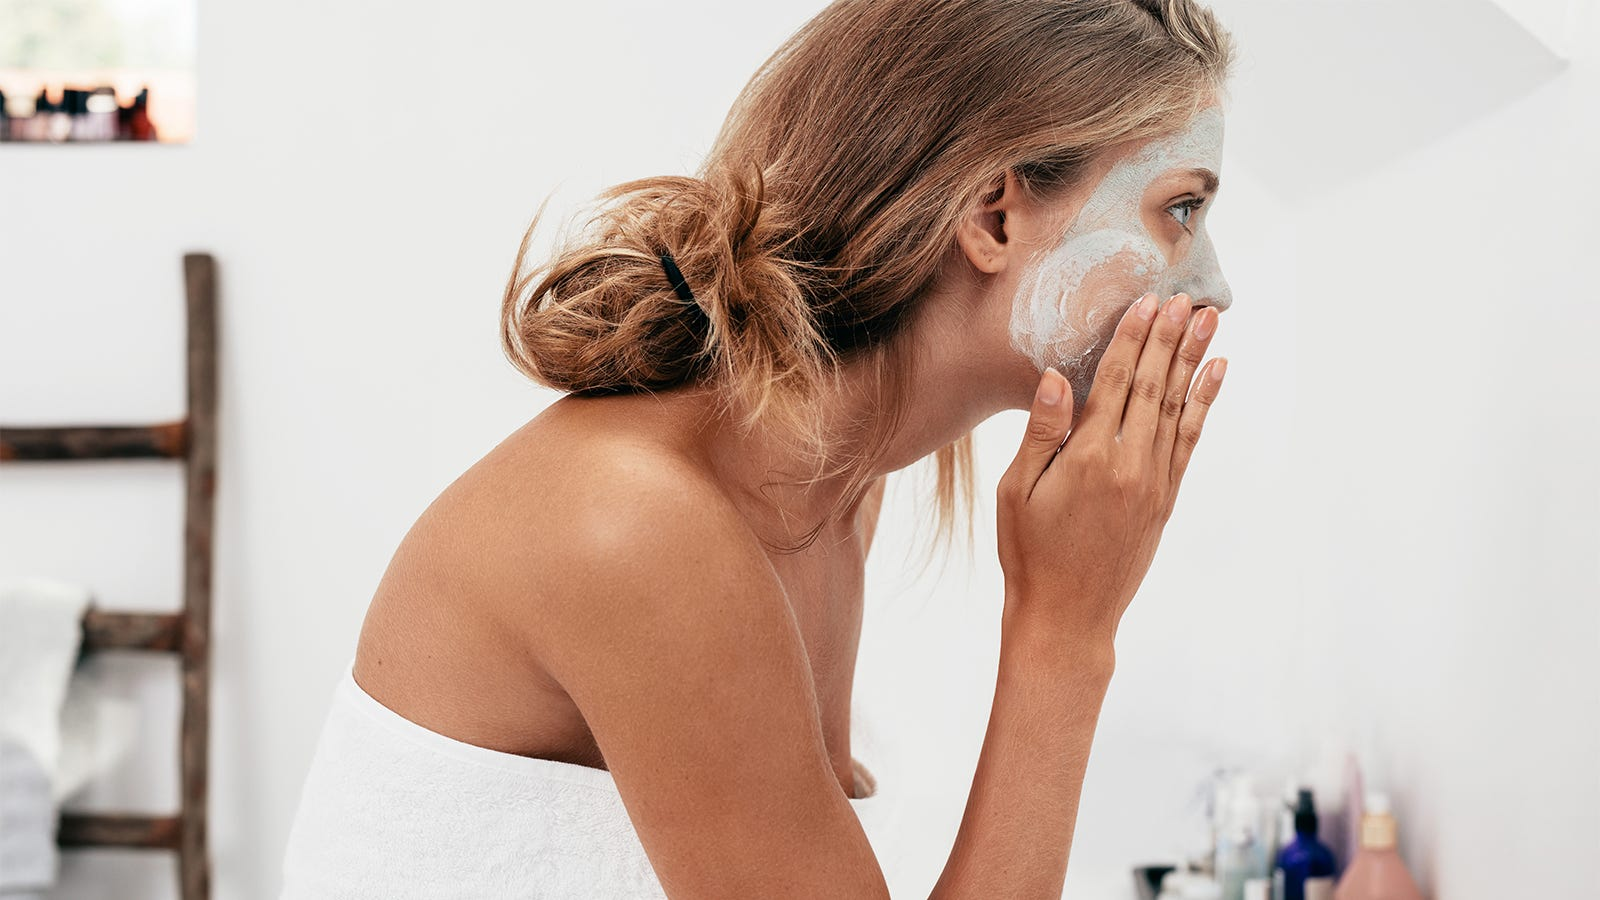 Why is my cleanser, serum, or moisturizer burning my face?